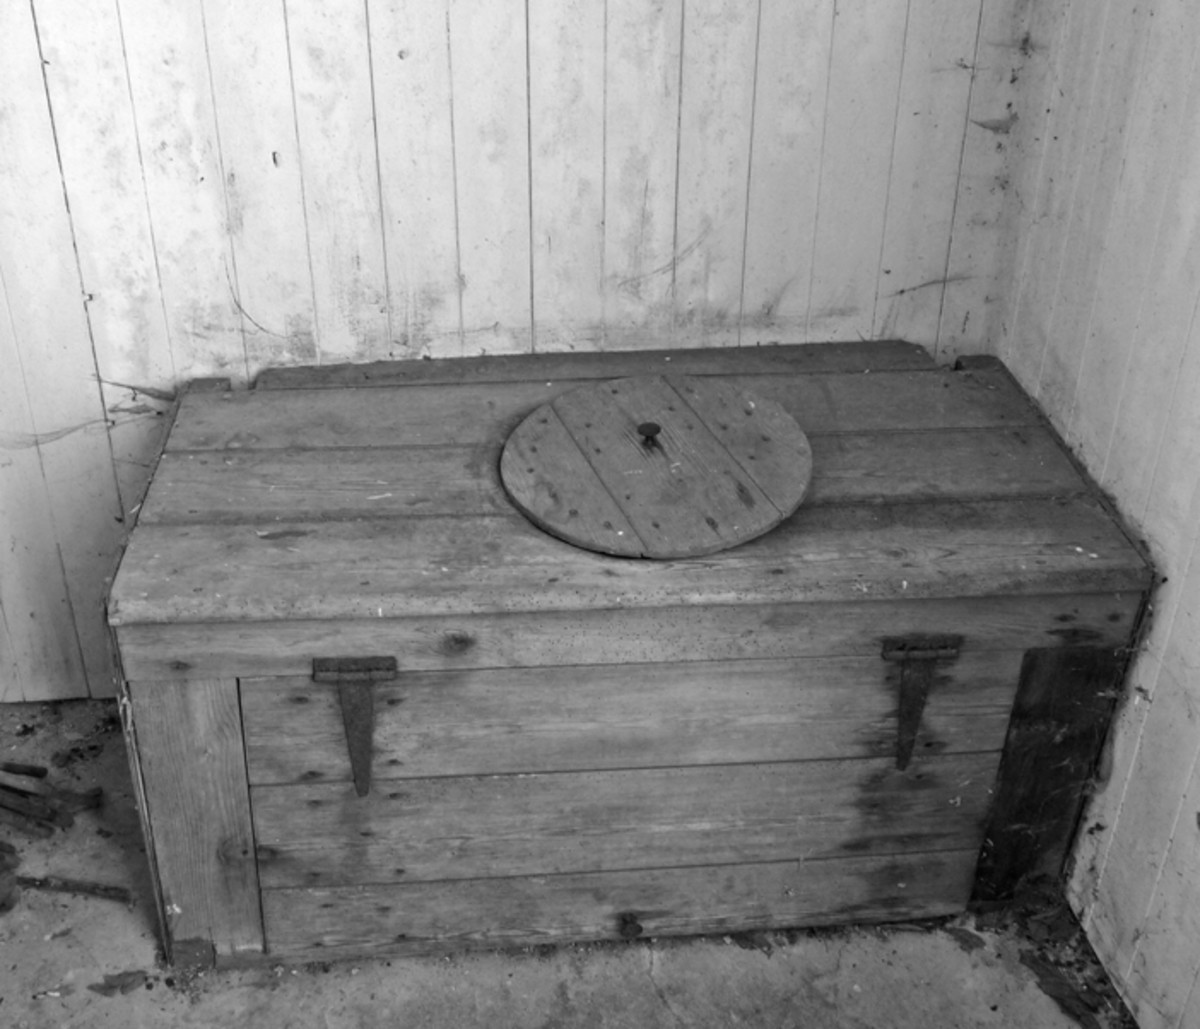 The outside toilet this looks very similar to the one at my nana's house when not in use it normally had a lid that went over the hole though not on the night of the rat encounter..